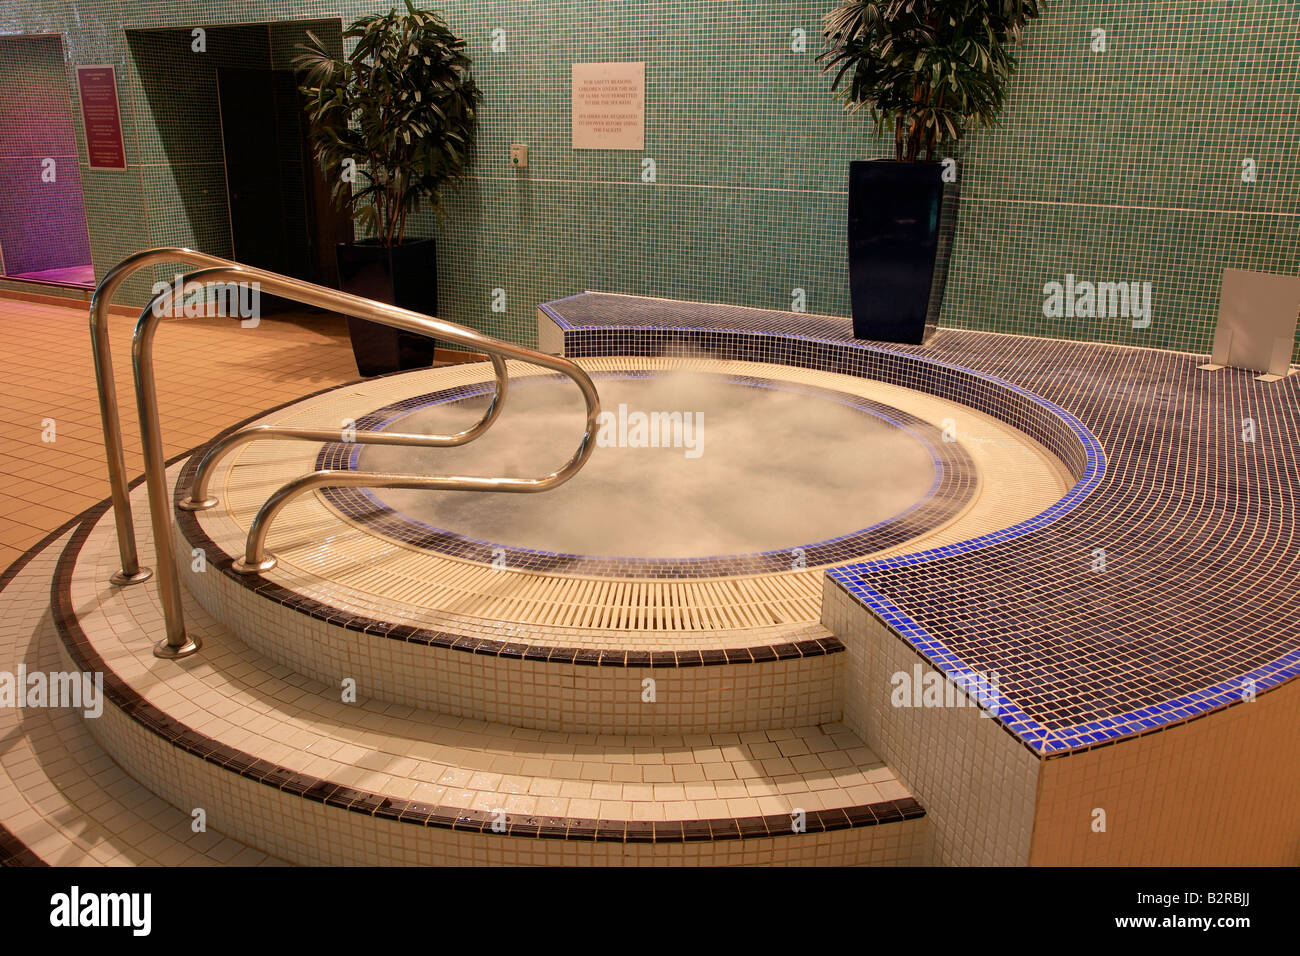 Spa Jacuzzi Uk Stock Photos & Spa Jacuzzi Uk Stock Images - Alamy